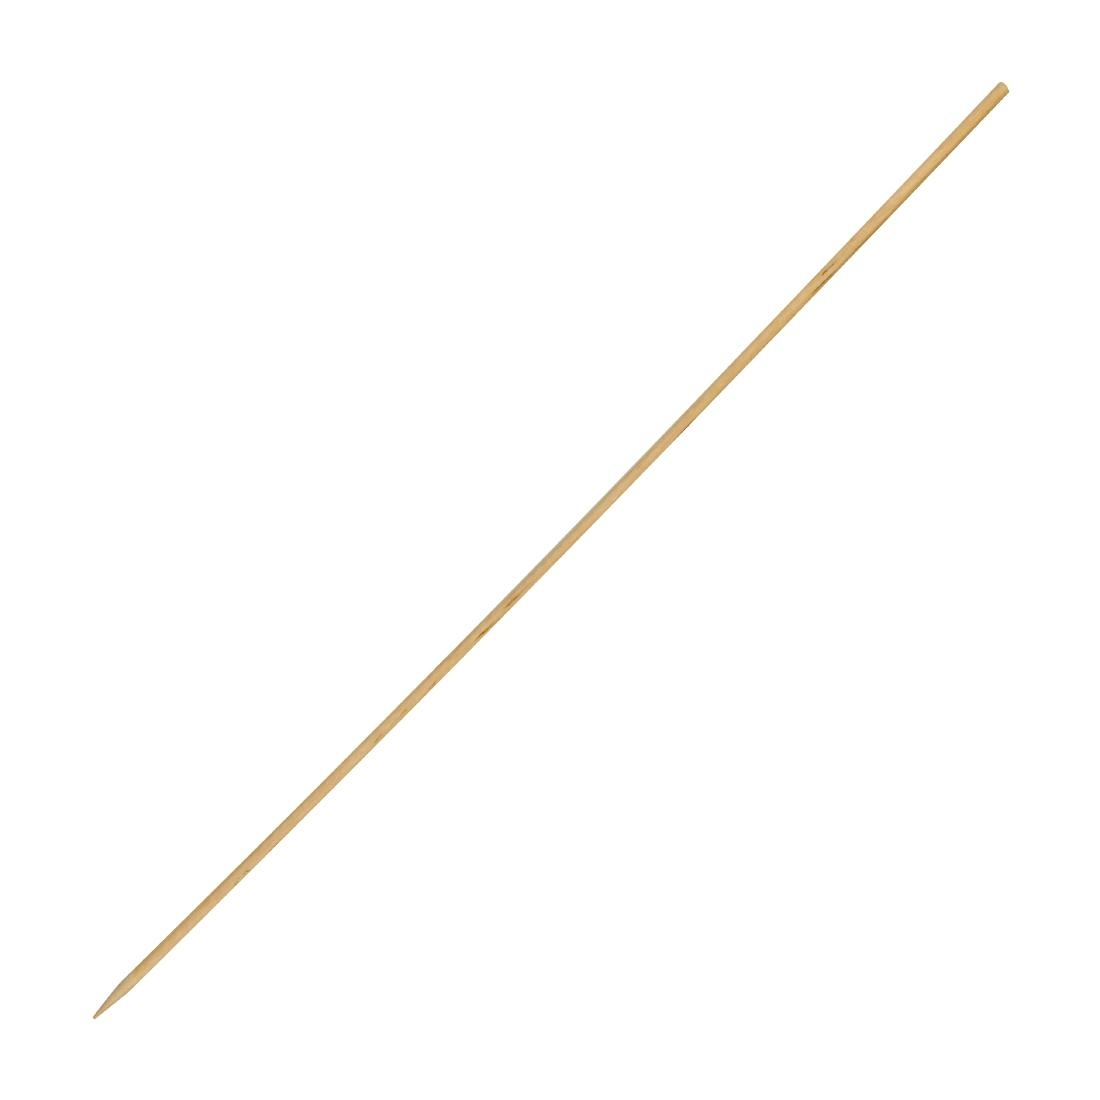 Disposable Wooden Skewers 10 Inch Pack of 200